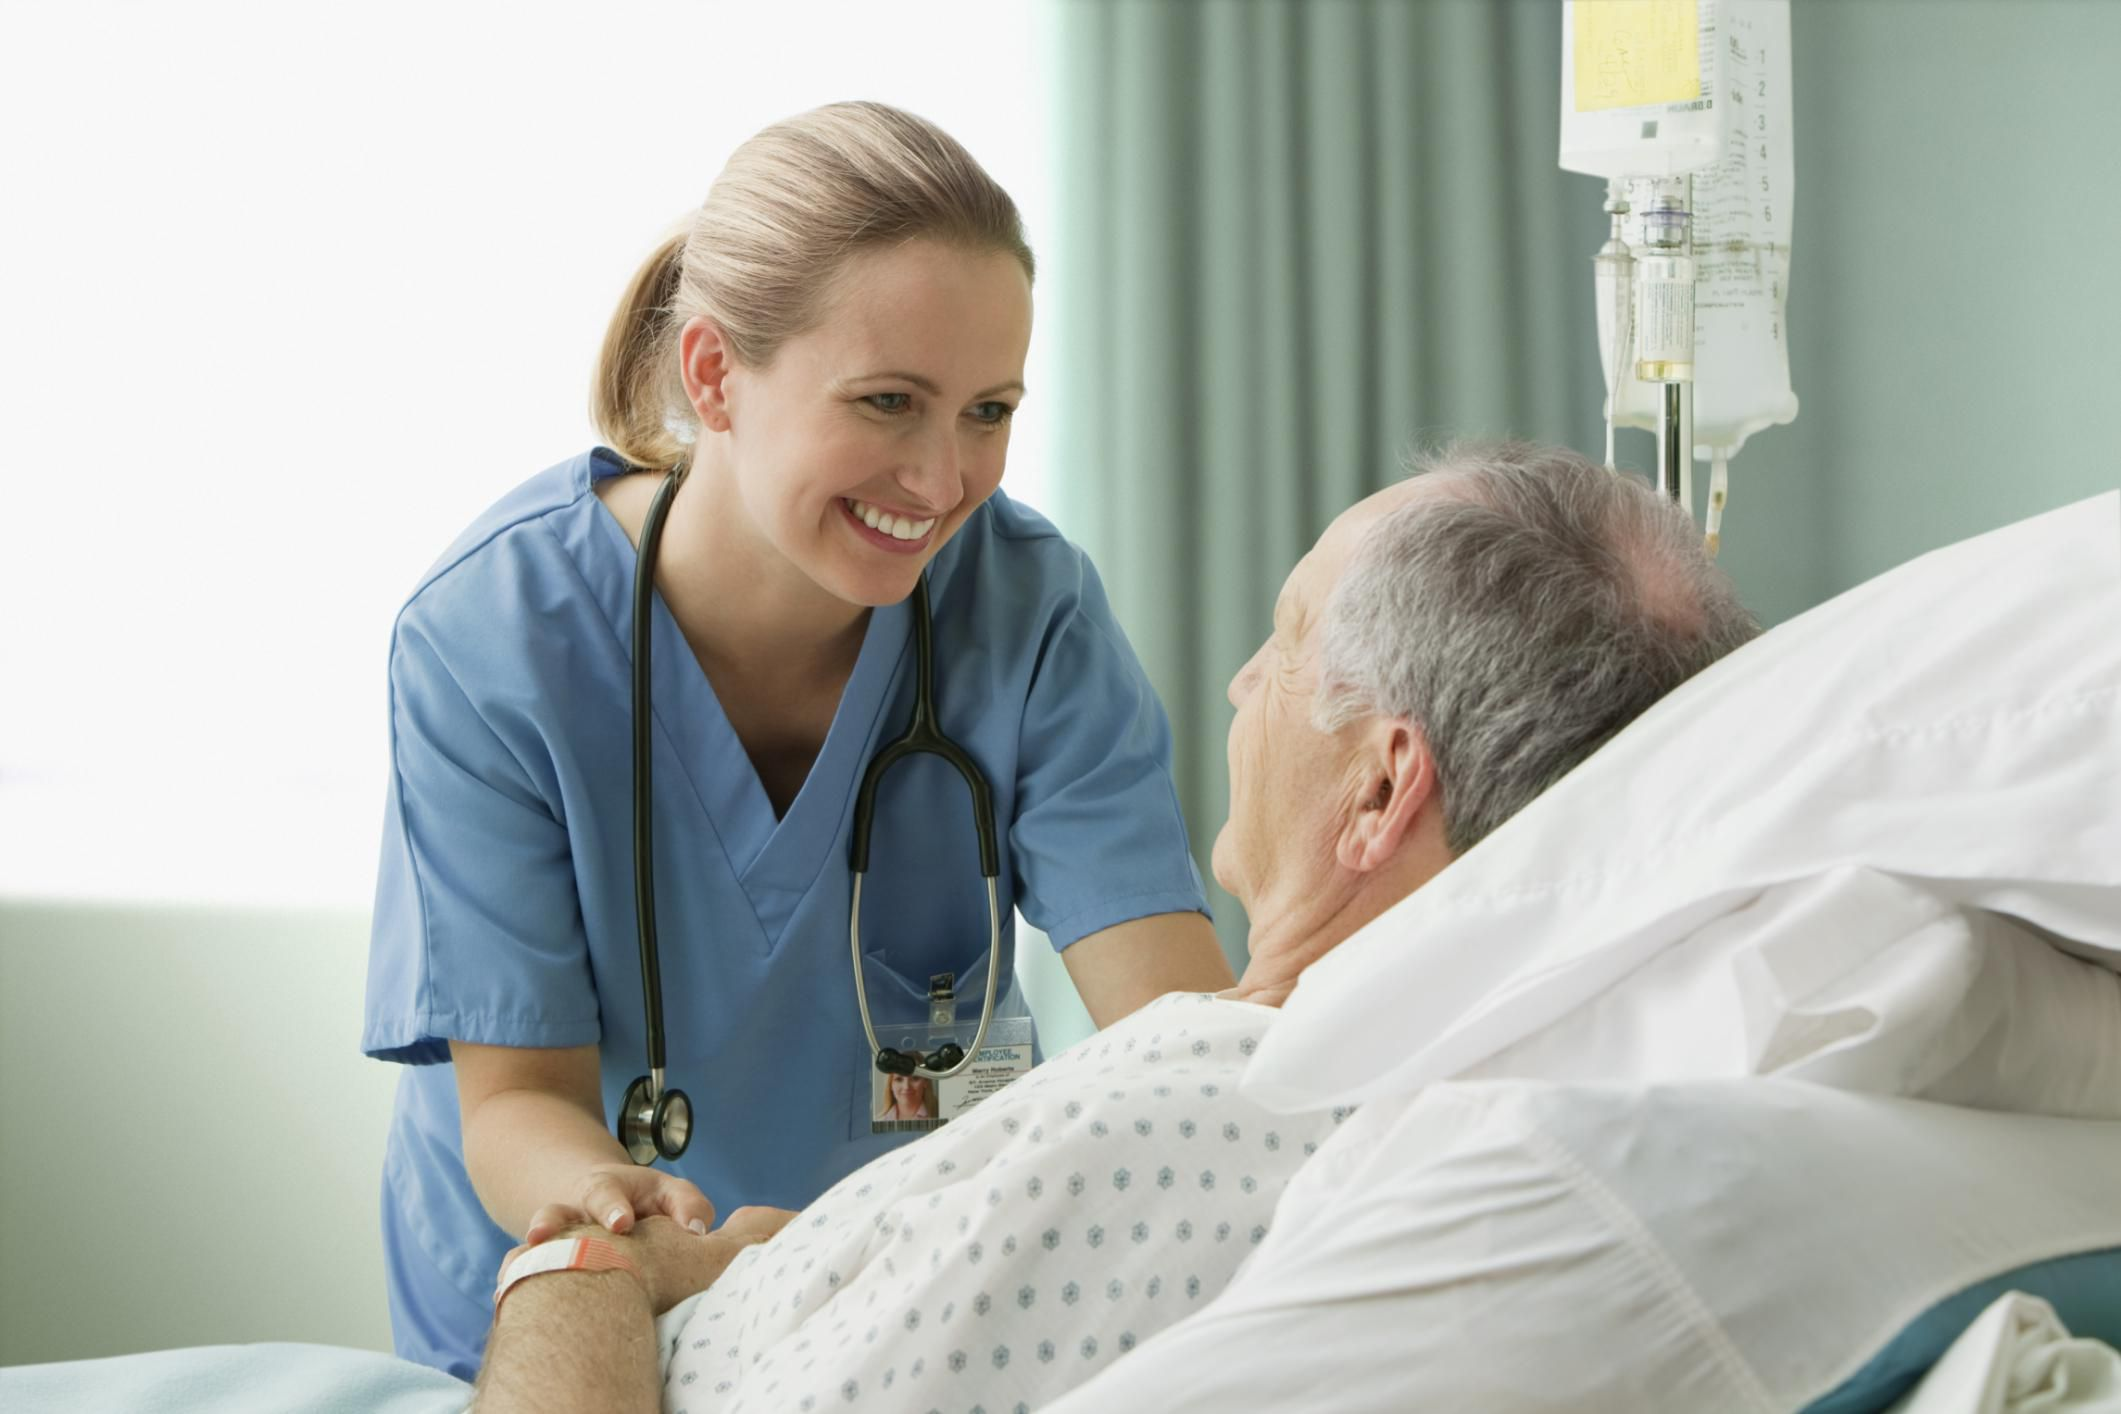 Different Types and Roles of Nurses